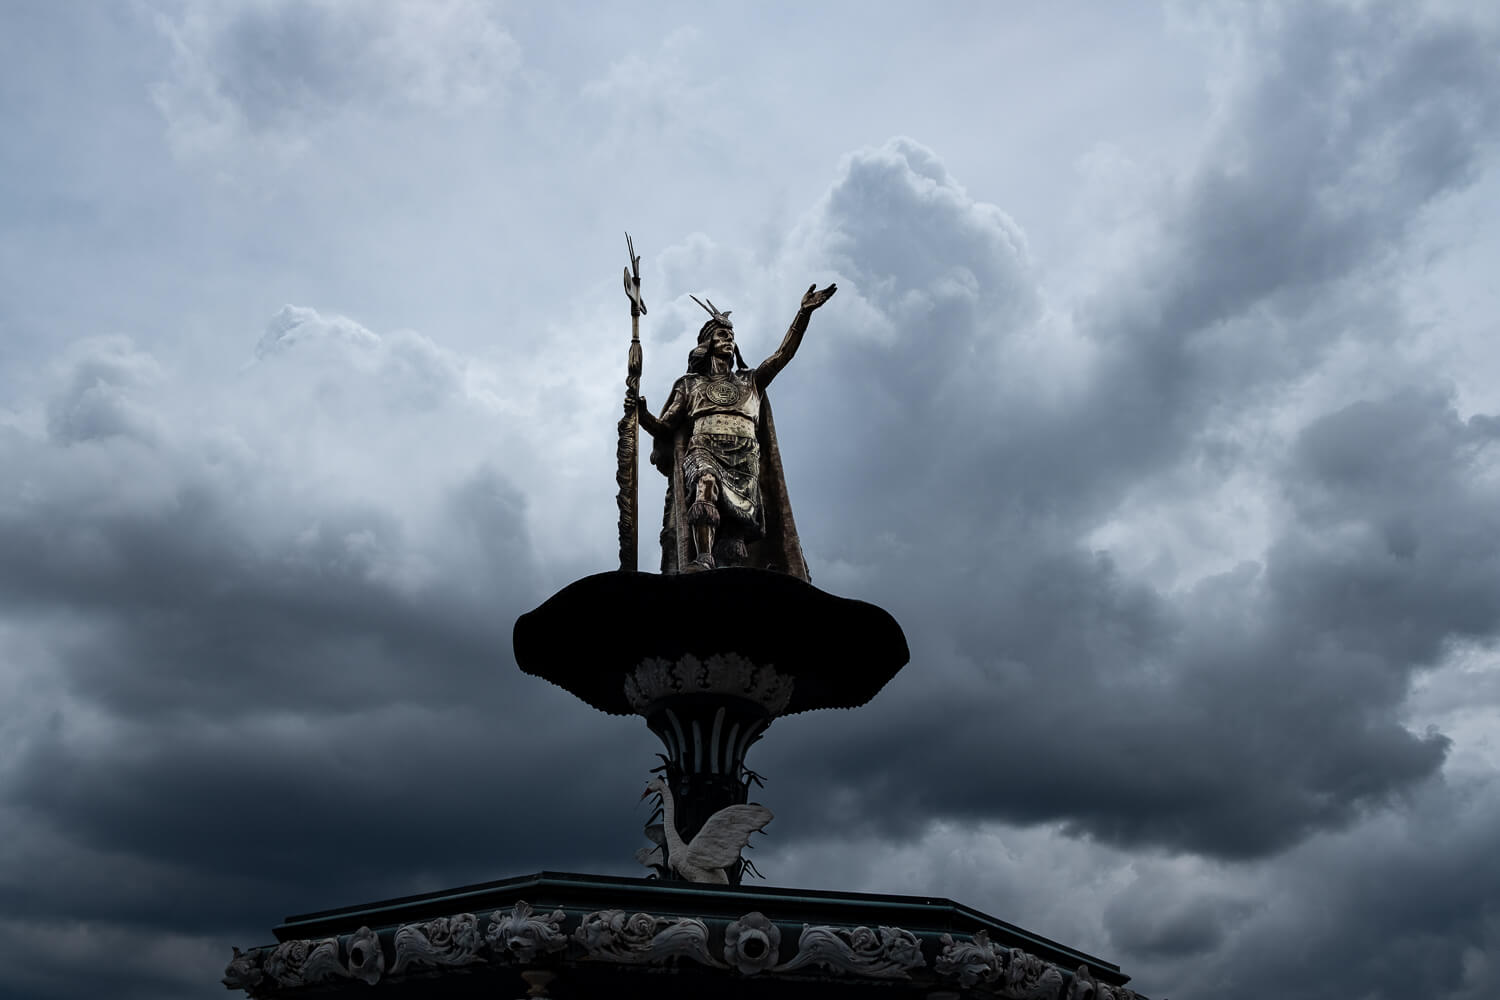 """The statue of Pachacuti in the Plaza de Armas, Cusco. Travel photography and guide by © Natasha Lequepeys for """"And Then I Met Yoko"""". #cusco #peru #photoblog #travelblog #peruitinerary #cuscoitinerary"""